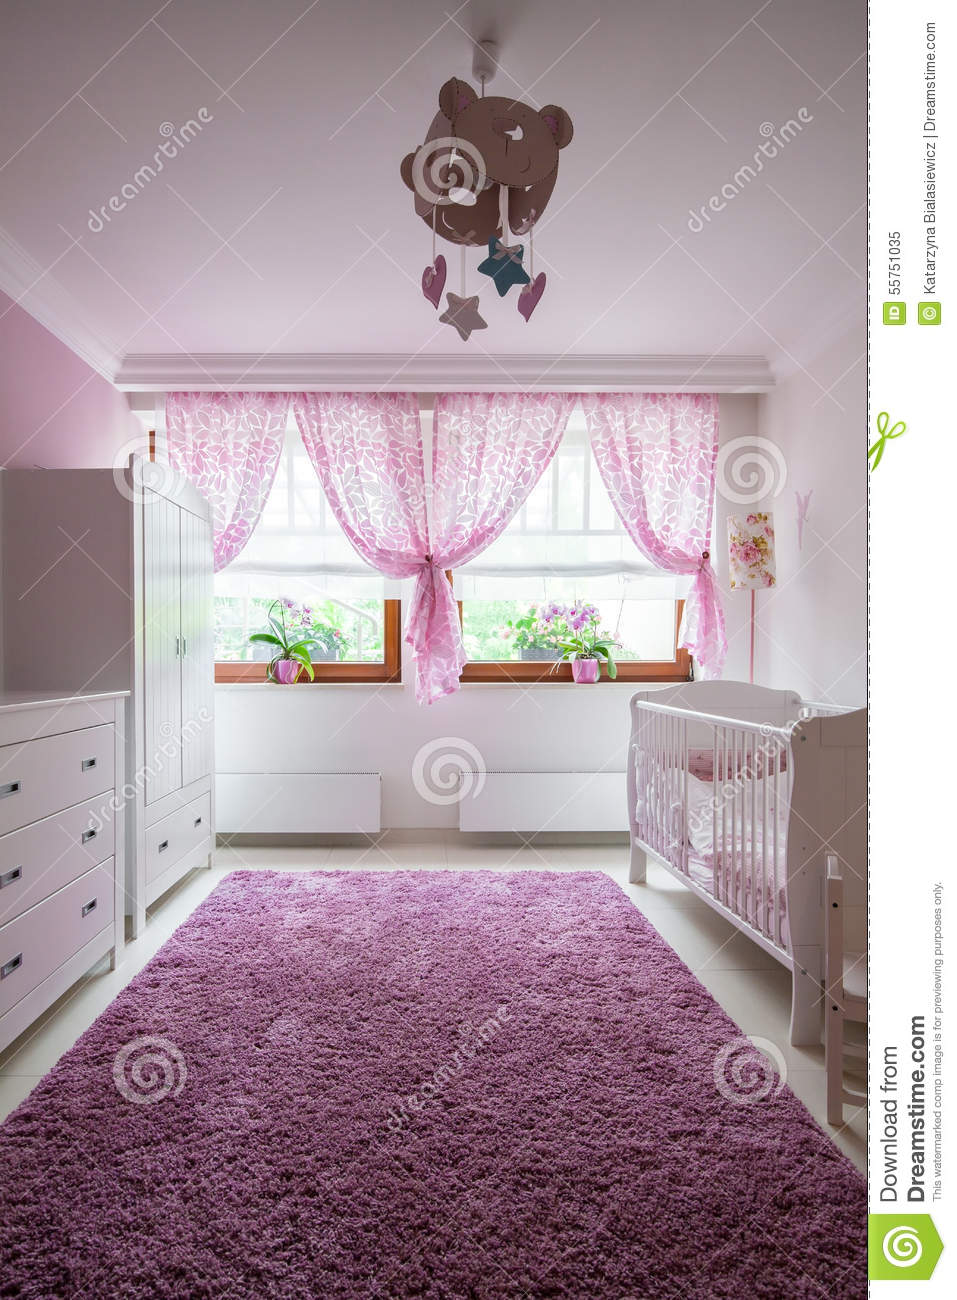 Plush carpet in baby room stock photo image 55751035 for Best carpet for baby nursery